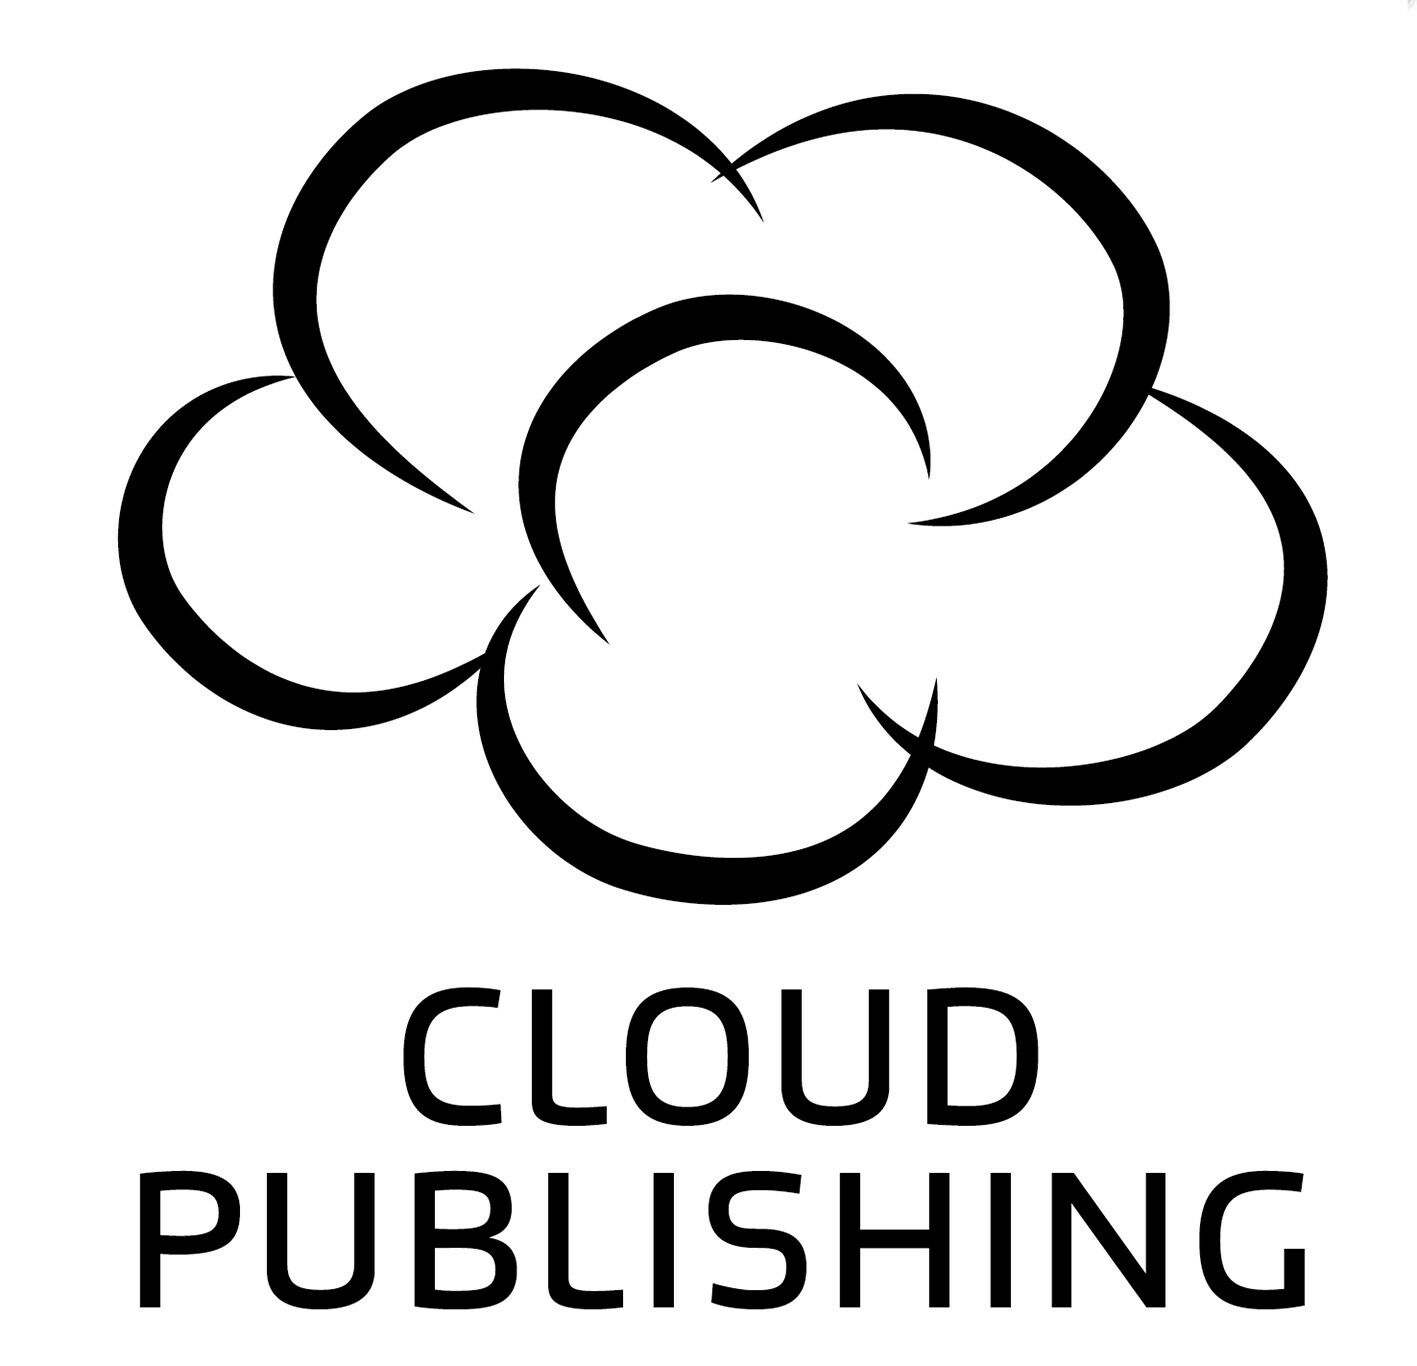 cloudpublishing